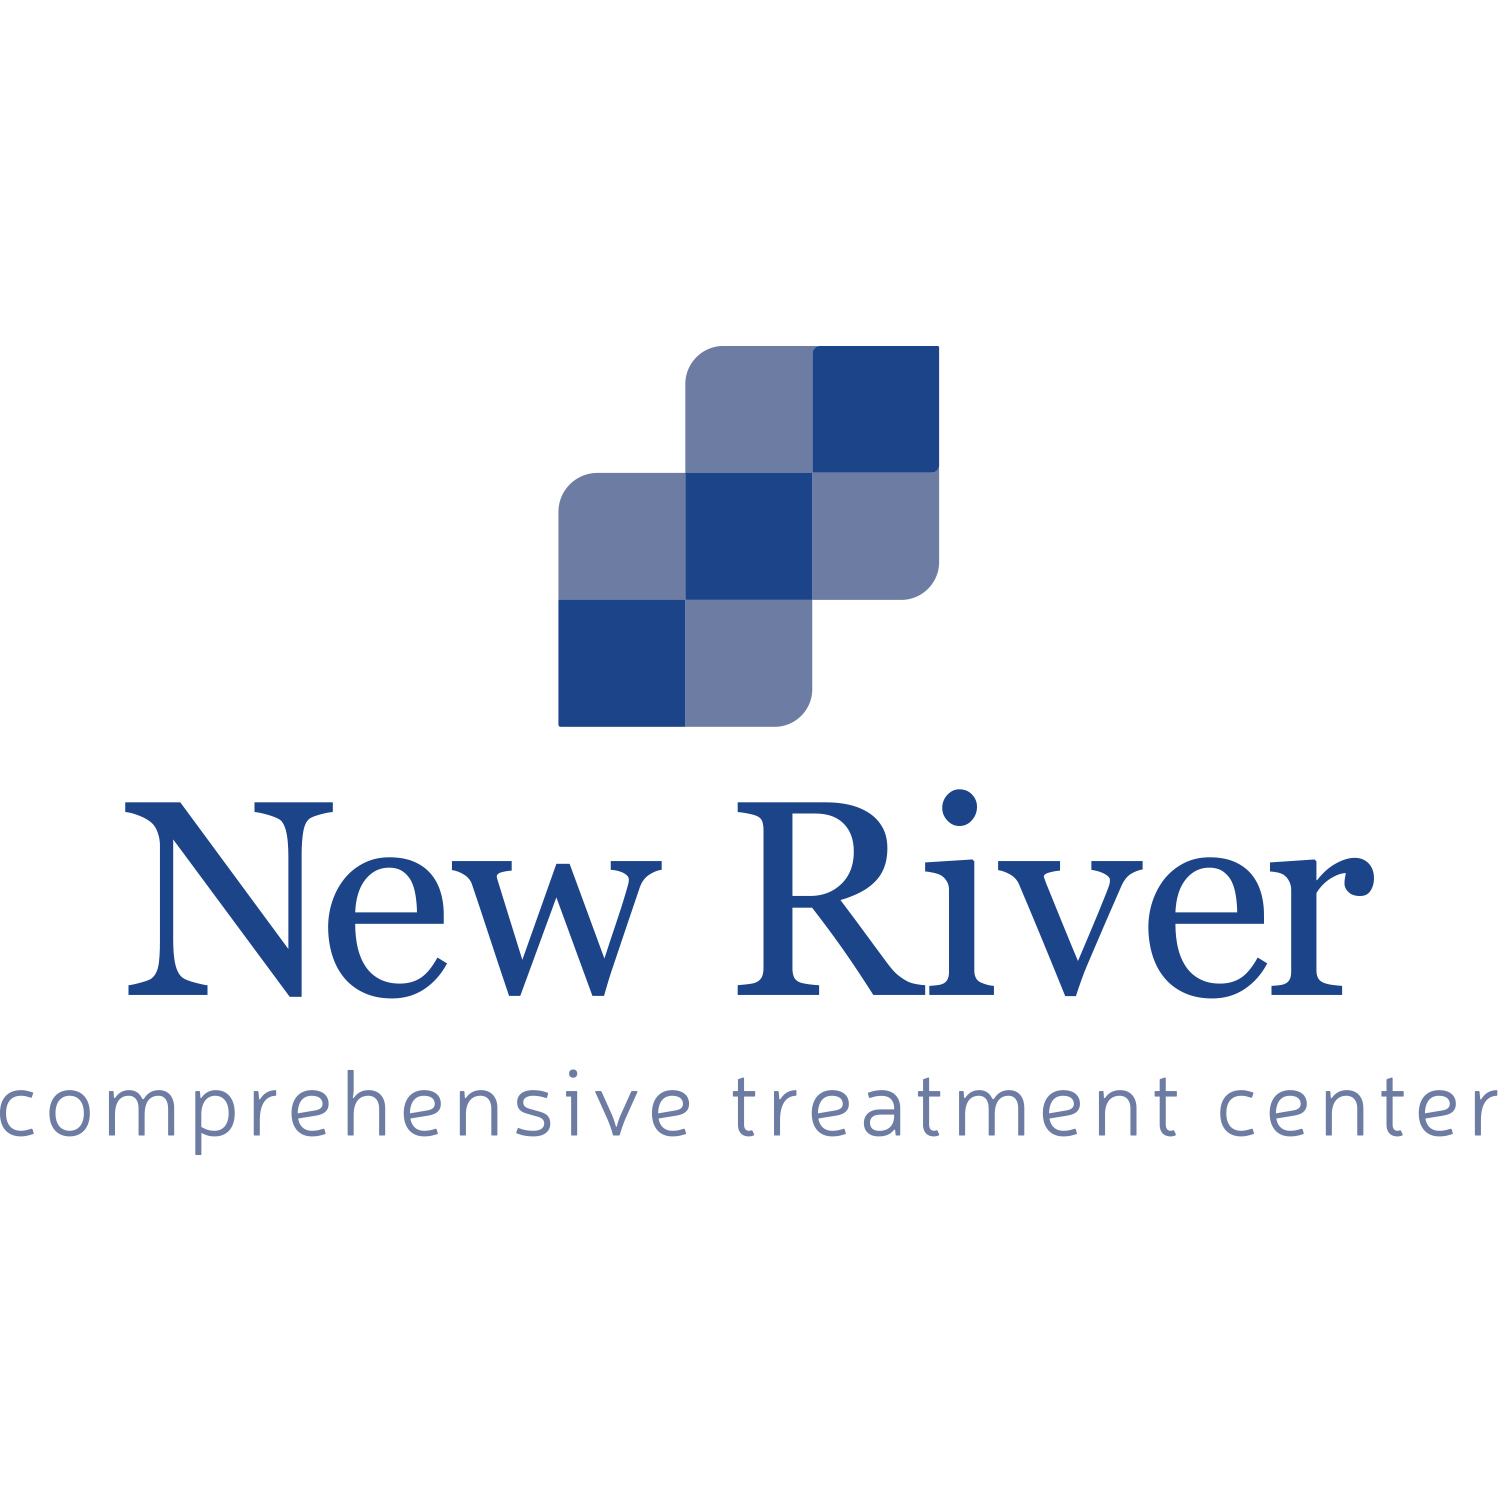 New River Comprehensive Treatment Center